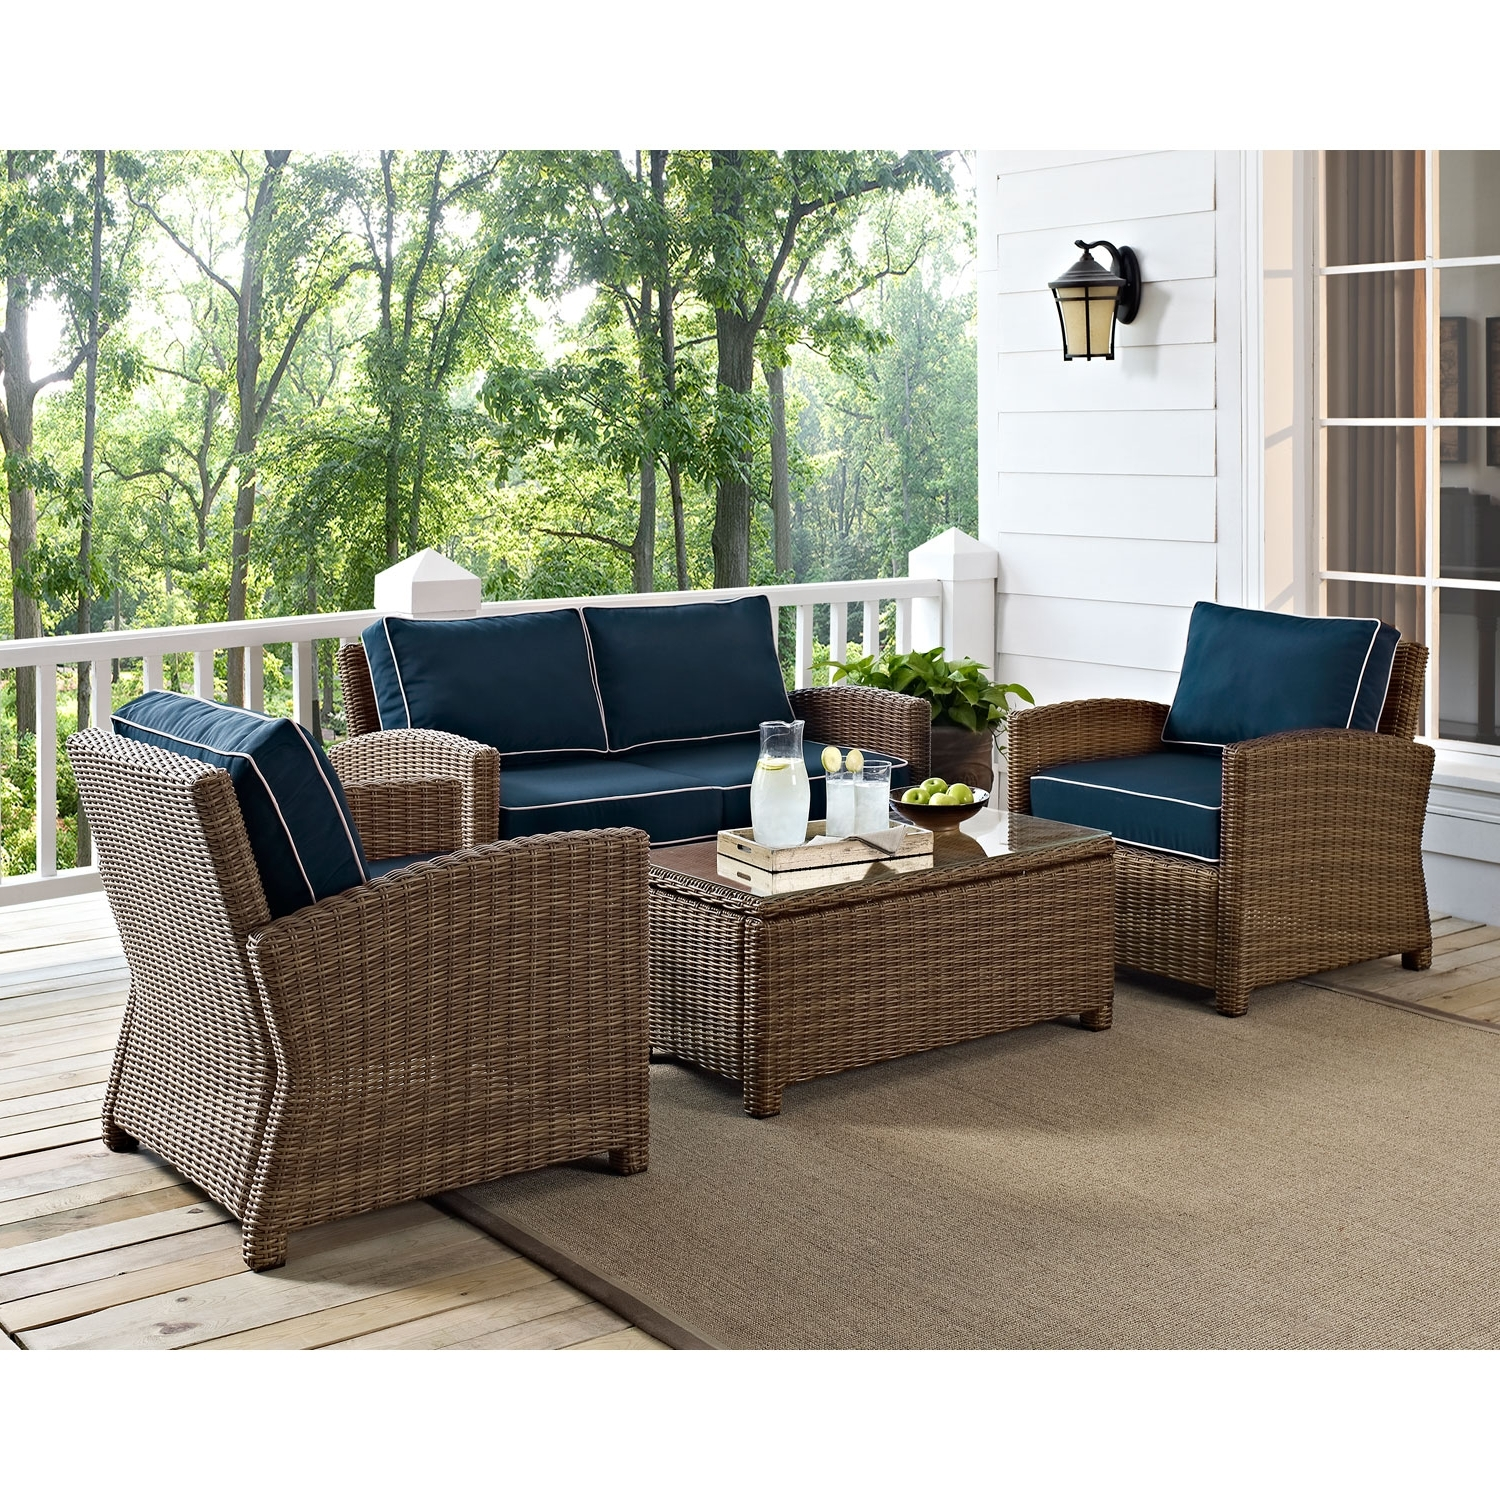 Most Popular 4 Piece Patio Conversation Sets Intended For Crosley Furniture Bradenton 4 Piece Outdoor Wicker Seating Set With (View 18 of 20)